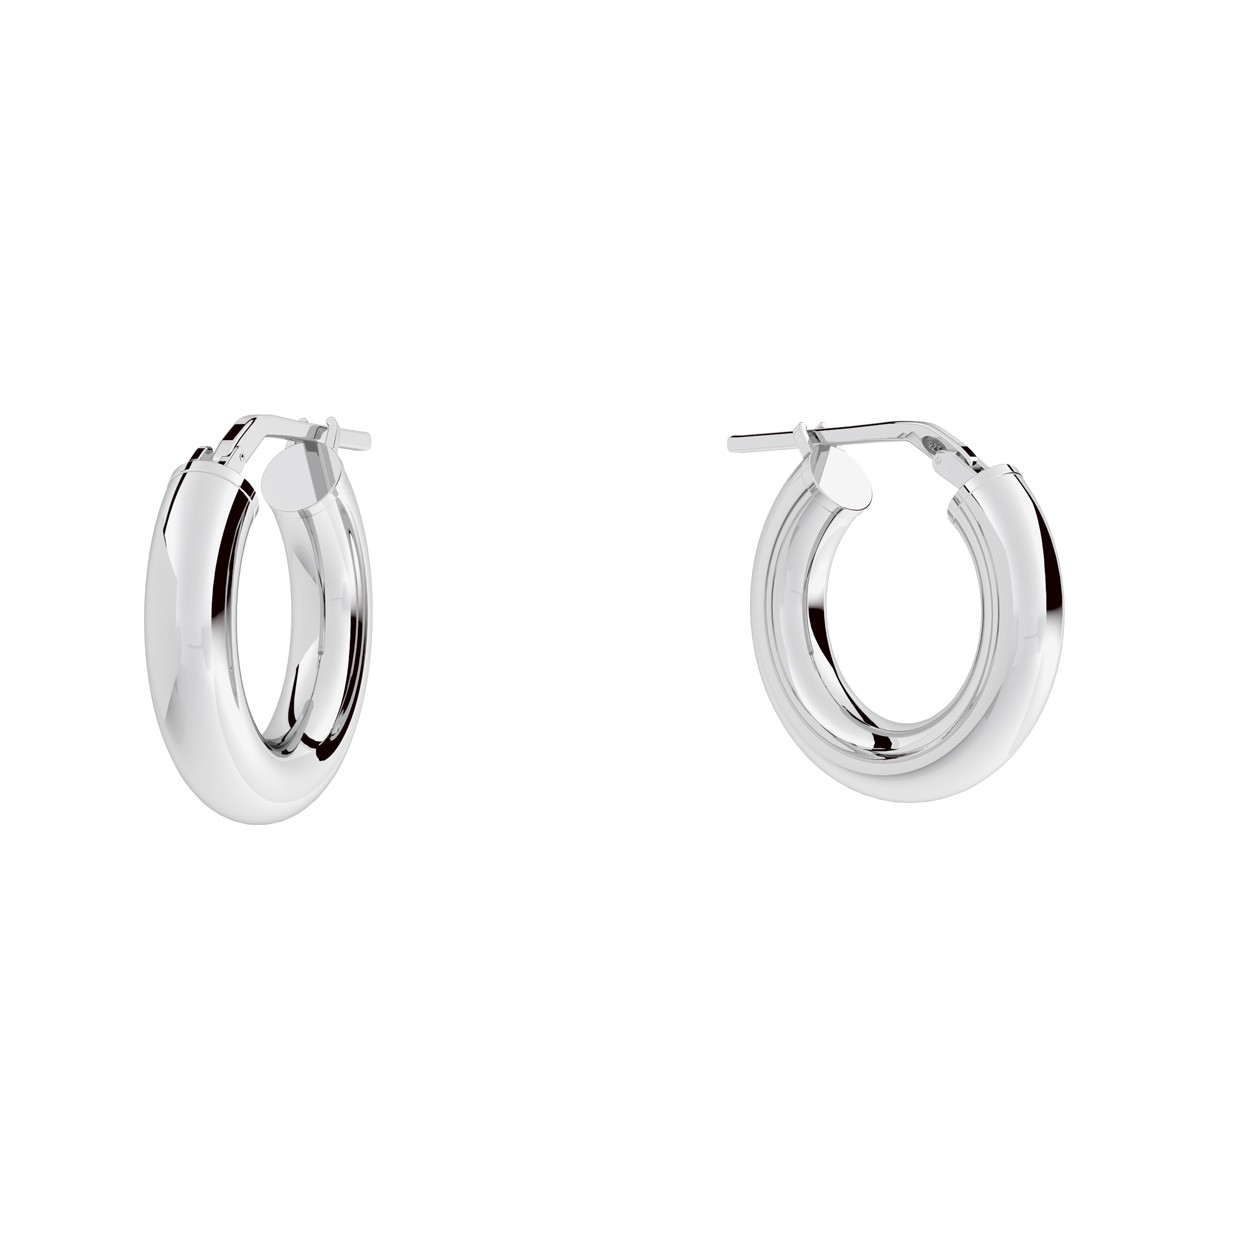 Round hoop earrings 2,5 cm with clasp, silver 925